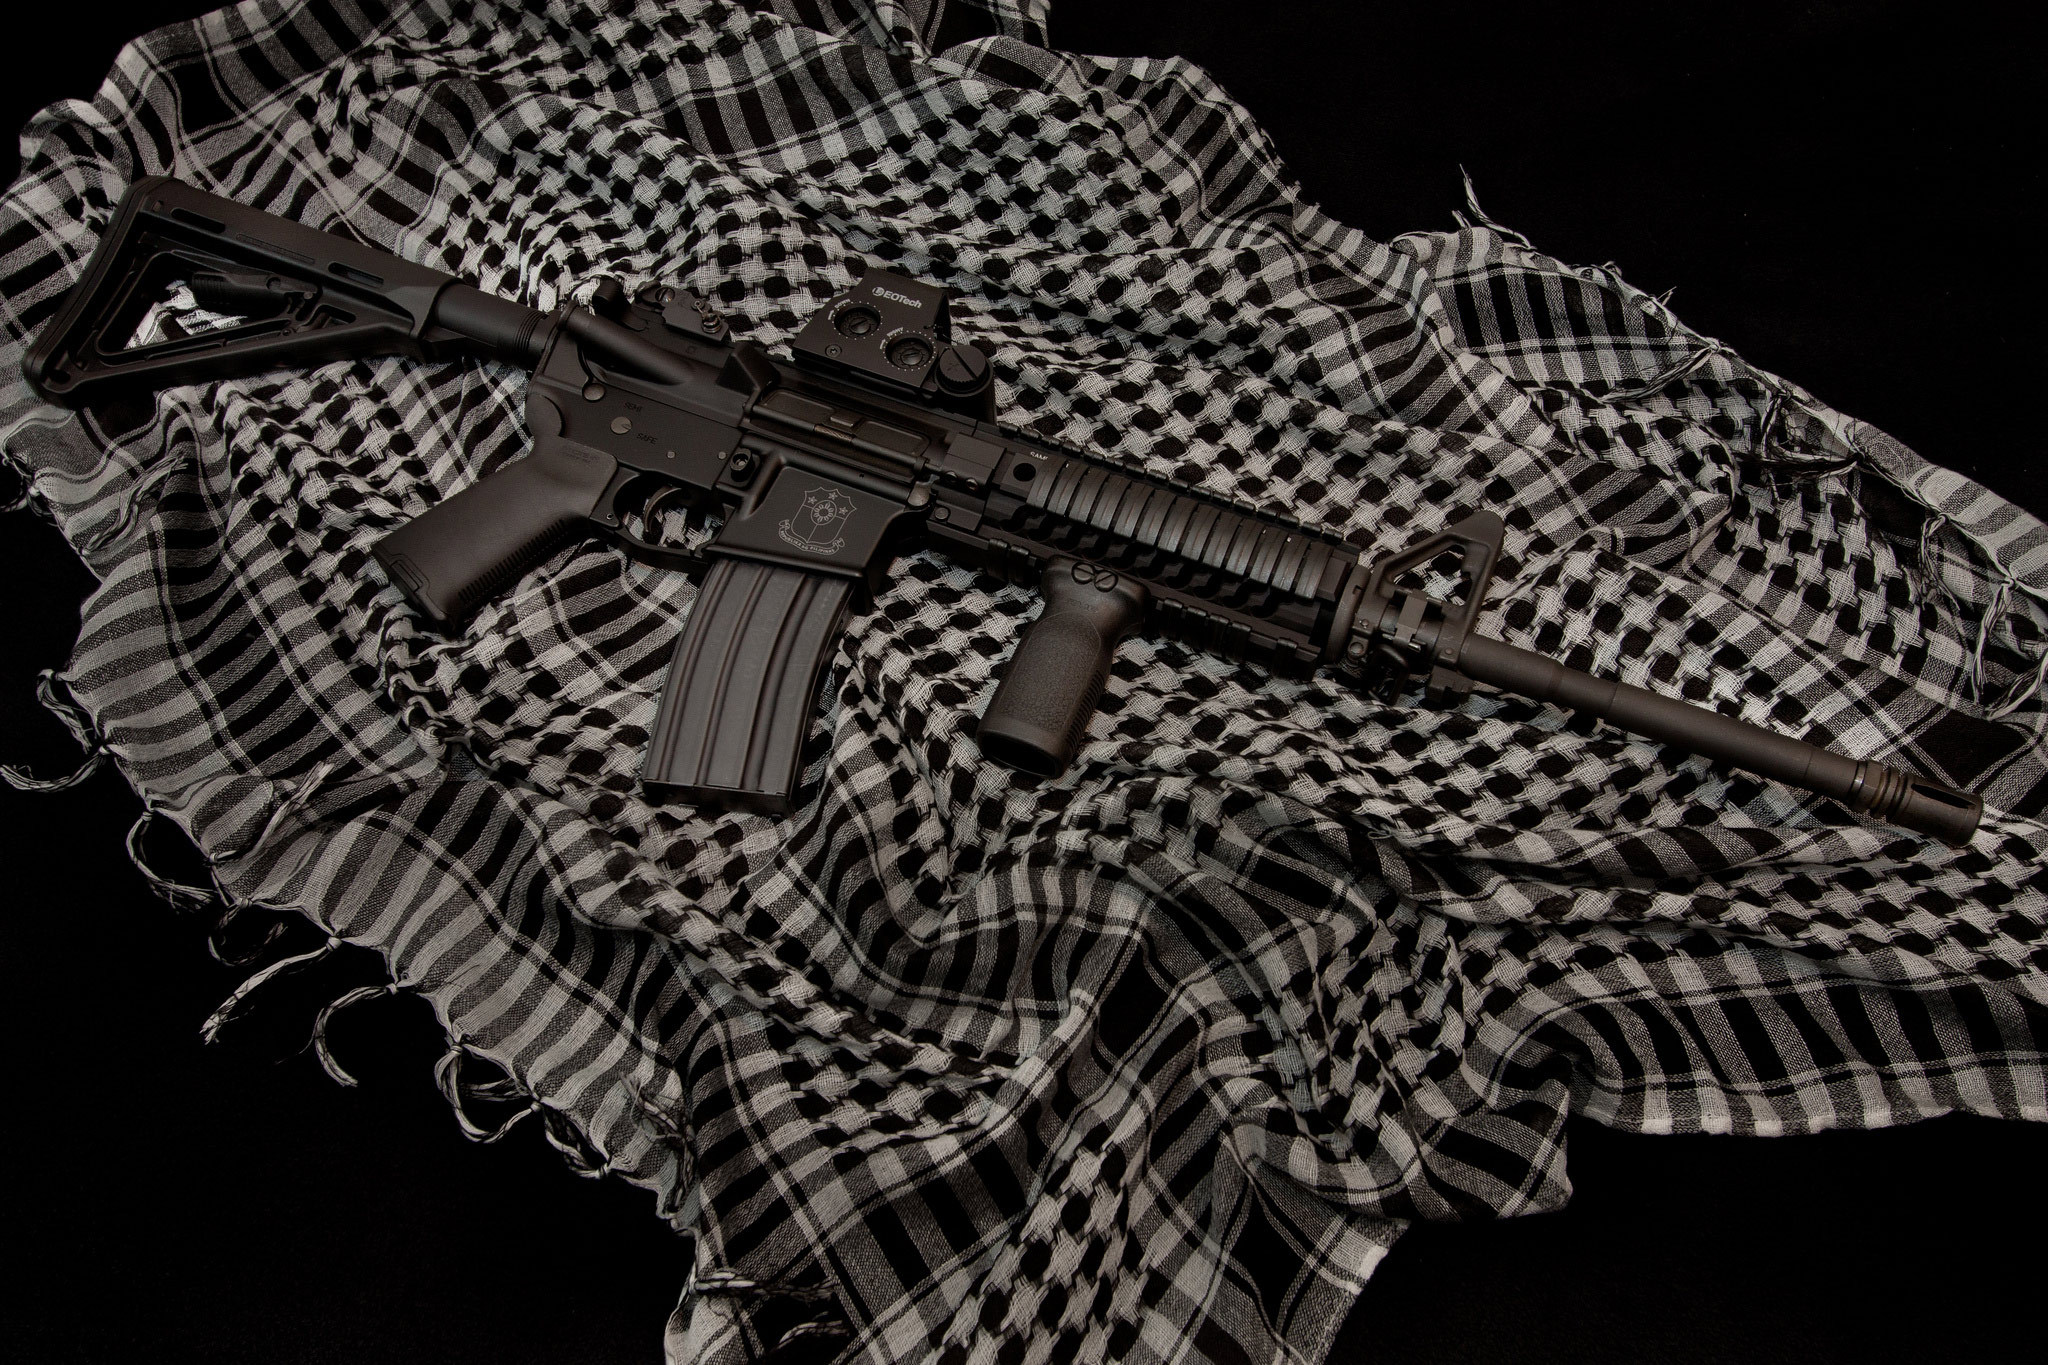 Ar 15 Wallpaper Download Free Beautiful Full Hd: Colt AR-15 Full HD Wallpaper And Background